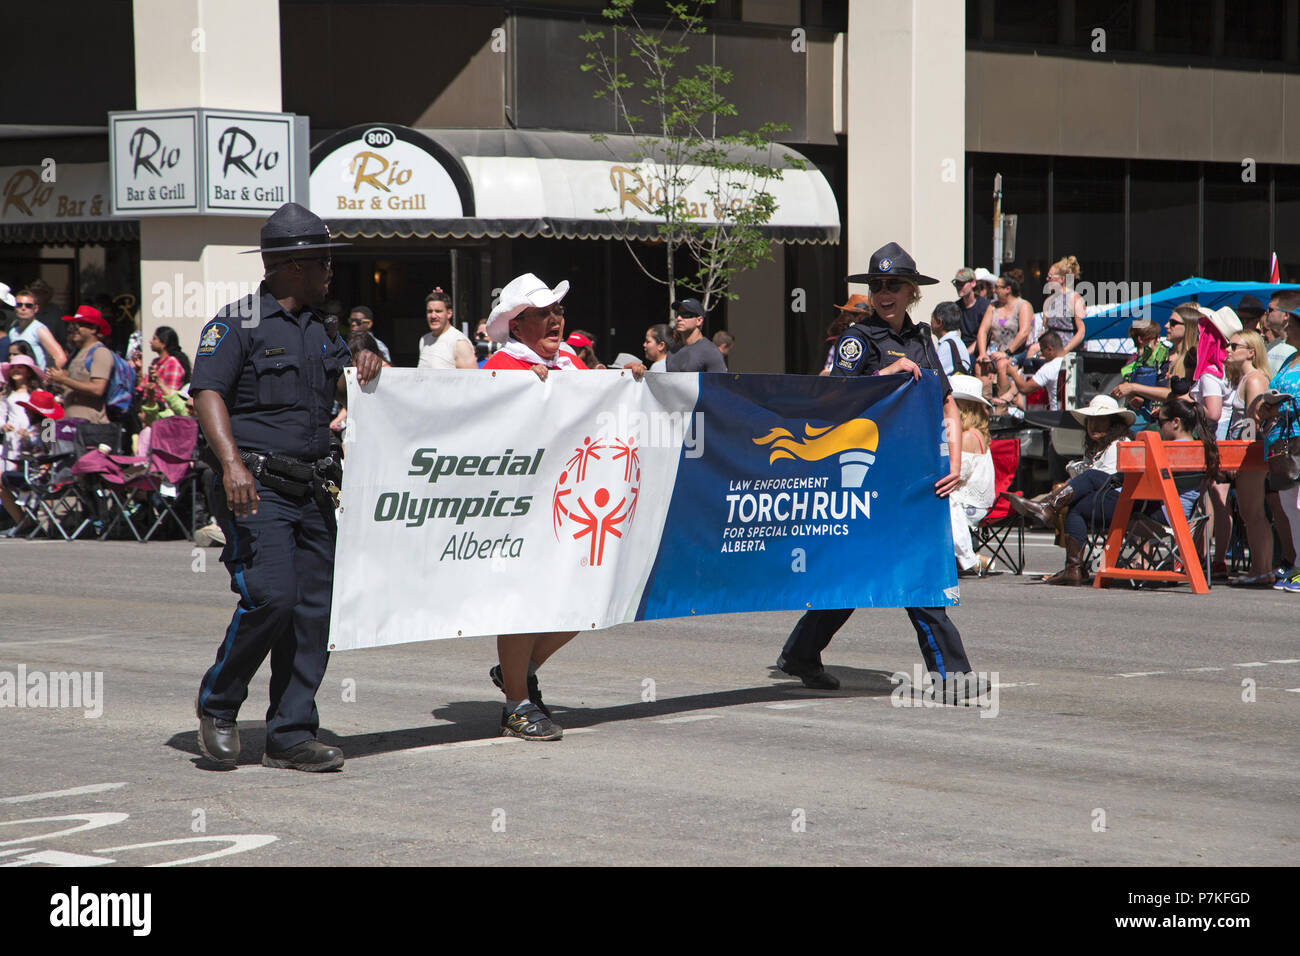 Calgary, Canada. 6th July, 2018.  Law enforcement officers marching for the Torch Run for Special Olympics Alberta in the Calgary Stampede Parade. The parade through downtown kicks off the Calgary Stampede each year. Rosanne Tackaberry/Alamy Live News - Stock Image